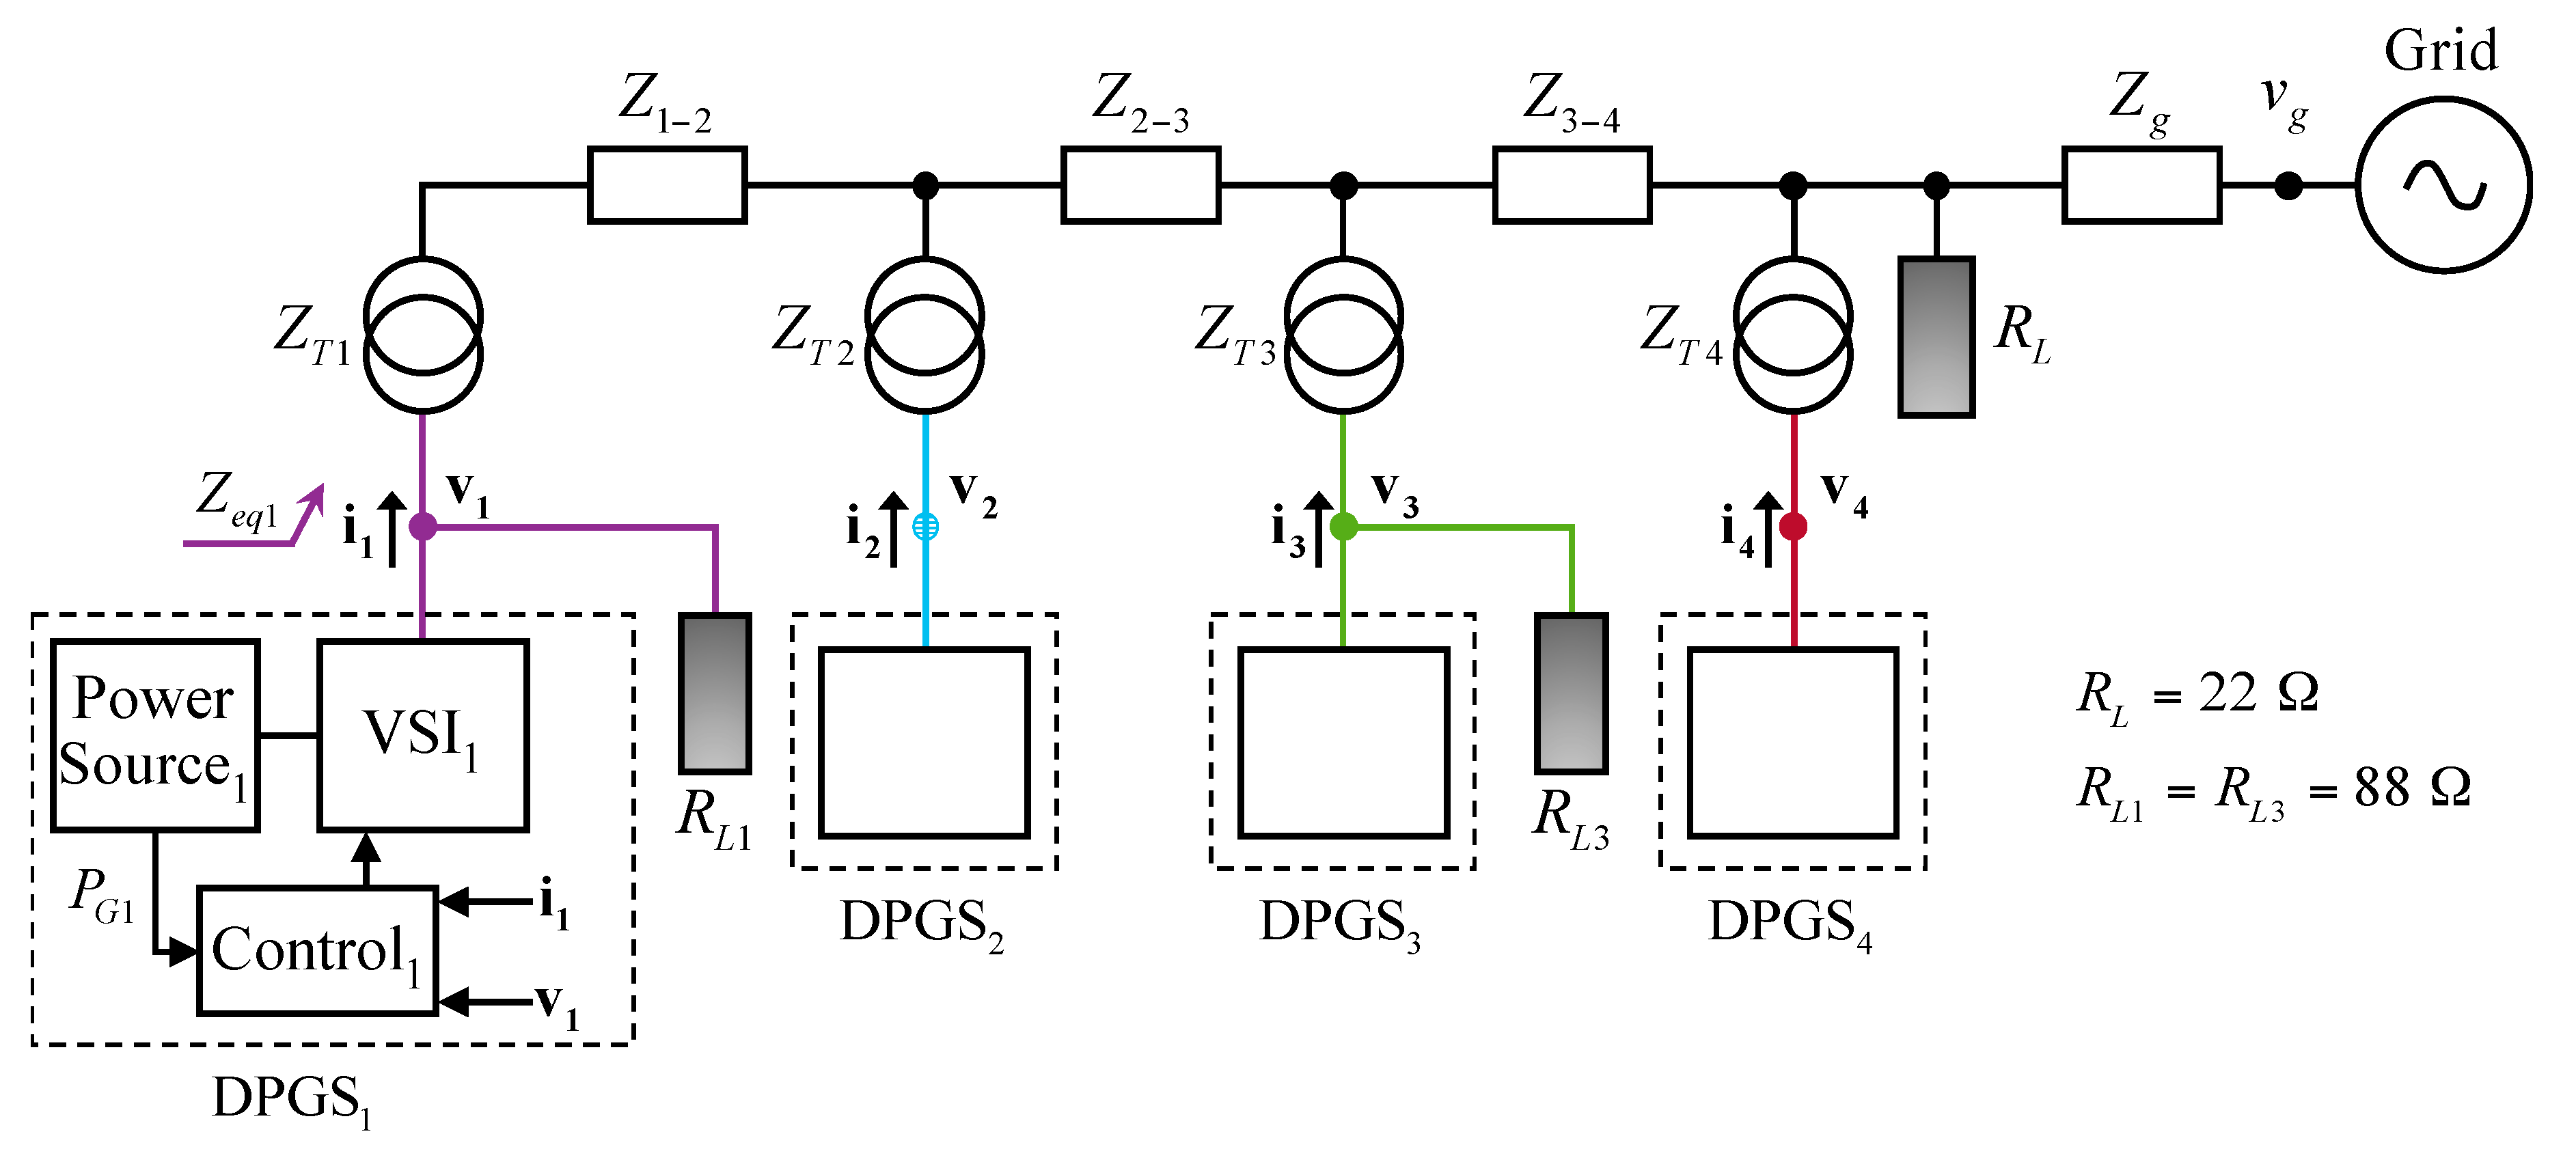 Energies Free Full Text Voltage Support Experimental Analysis Of Transistor Circuit Techniques Discrete And Integrated Crc Press 11 01949 G001